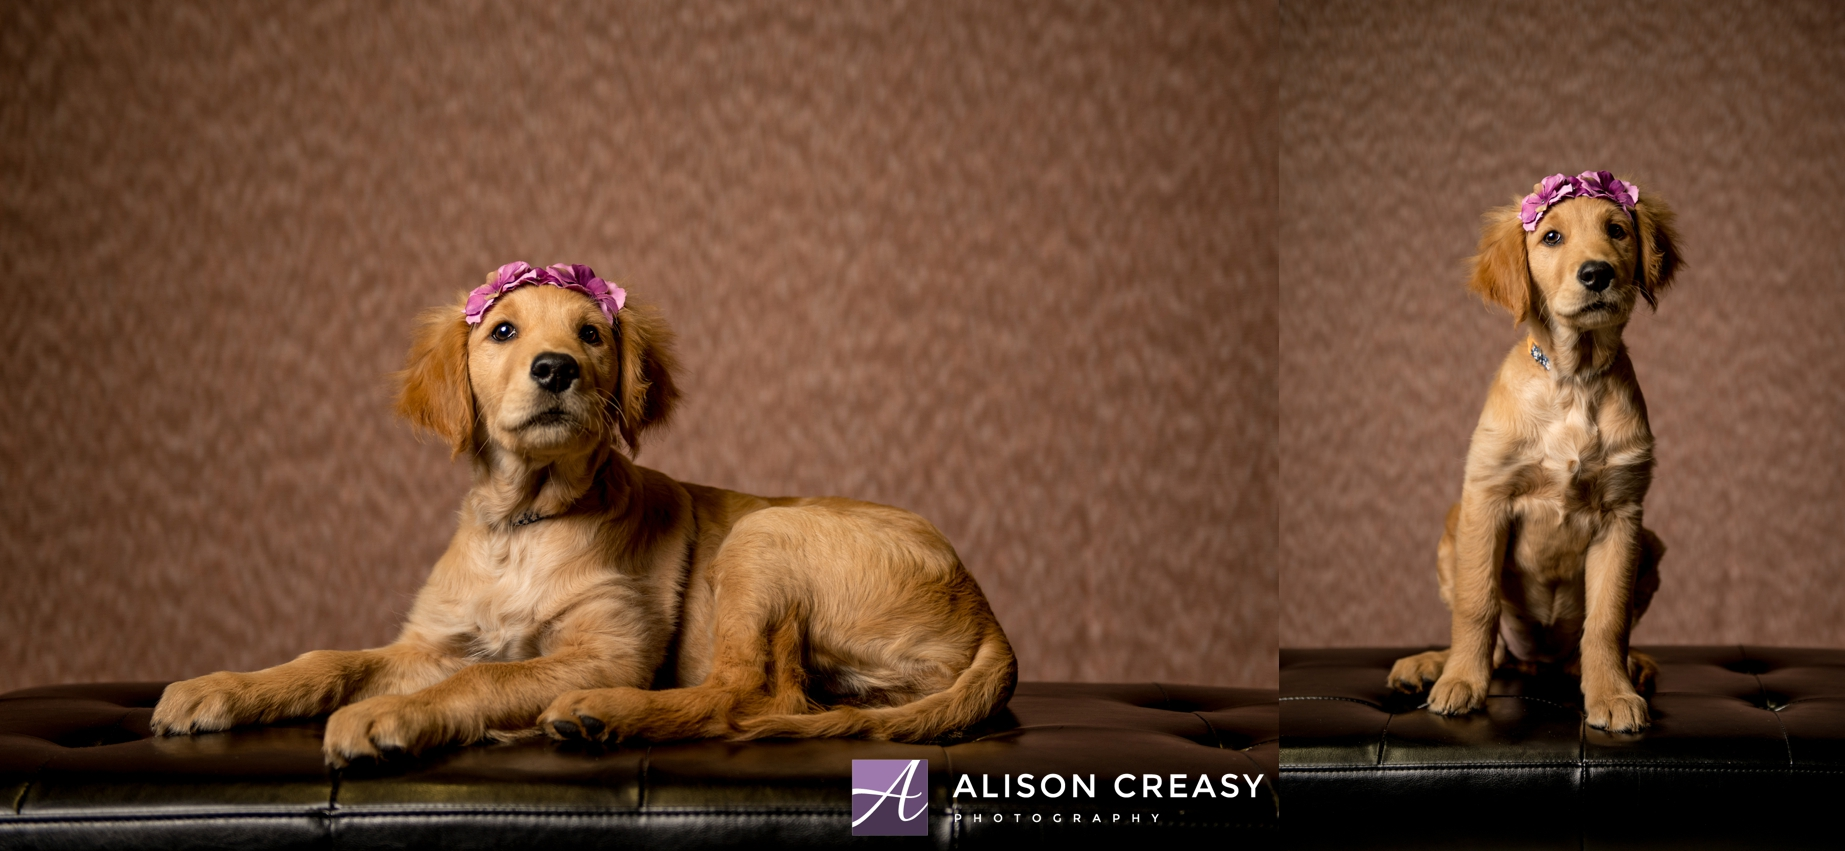 Alison-Creasy-Photography-Lynchburg-VA-Pet-Photographer_0001.jpg